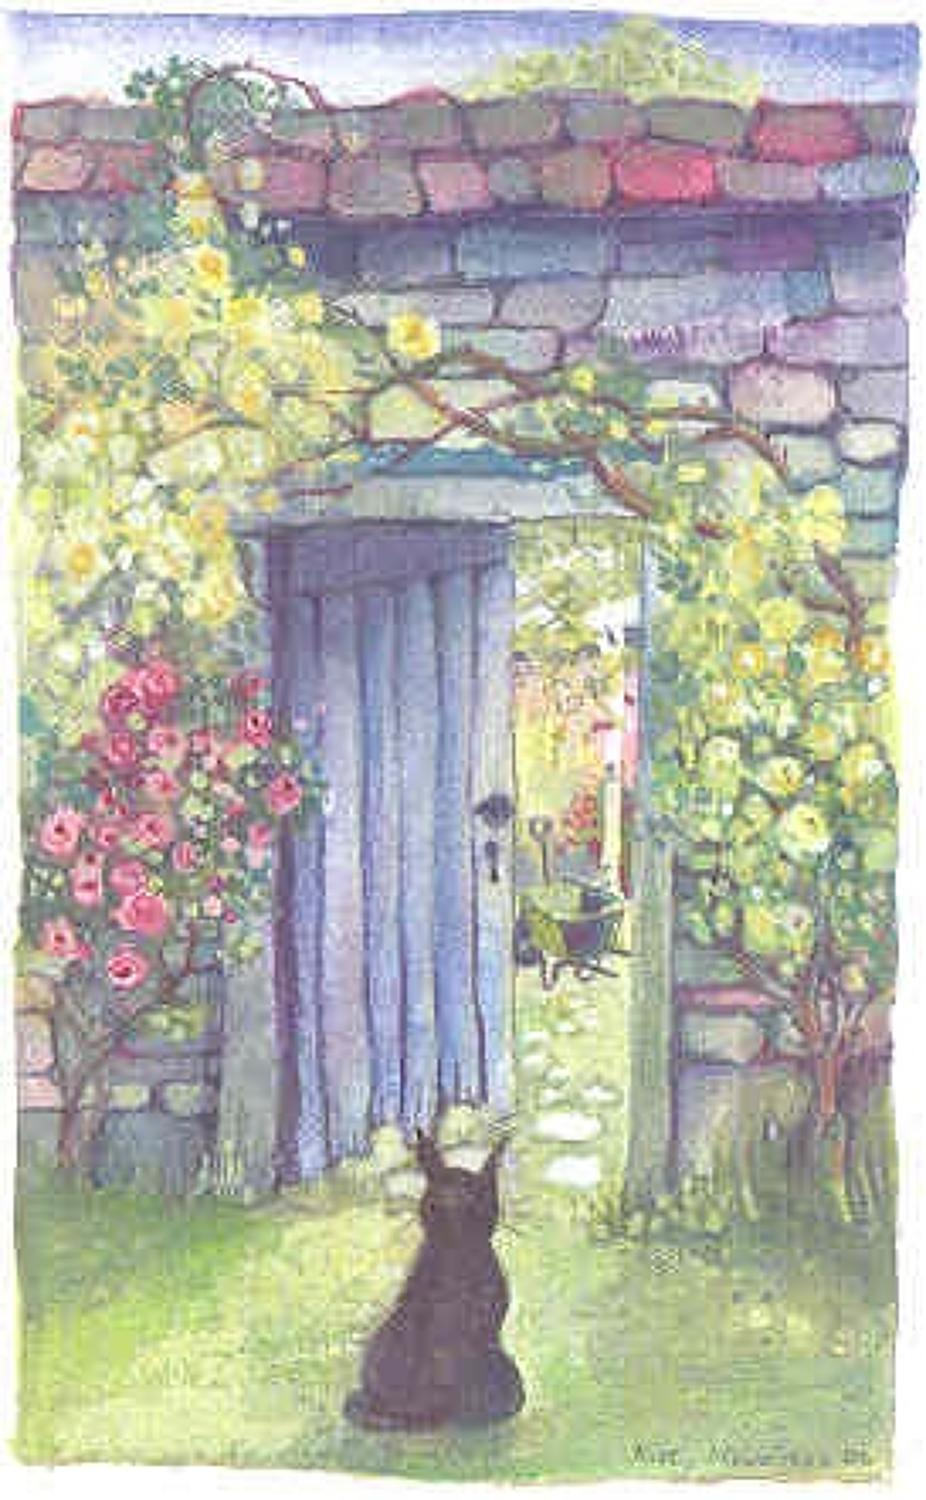 Cat & walled garden